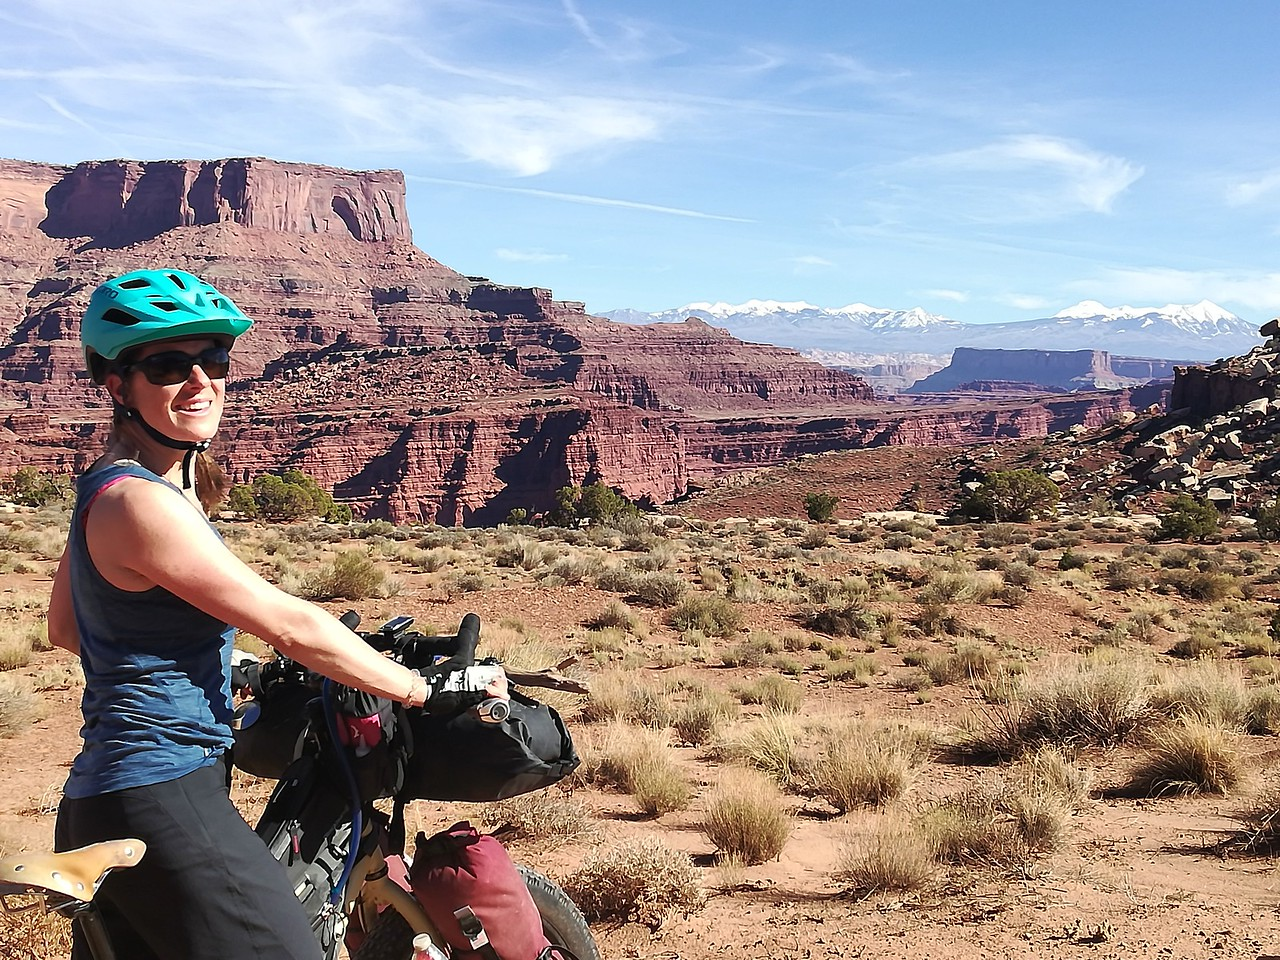 Julie riding on the White Rim of Canyonlands